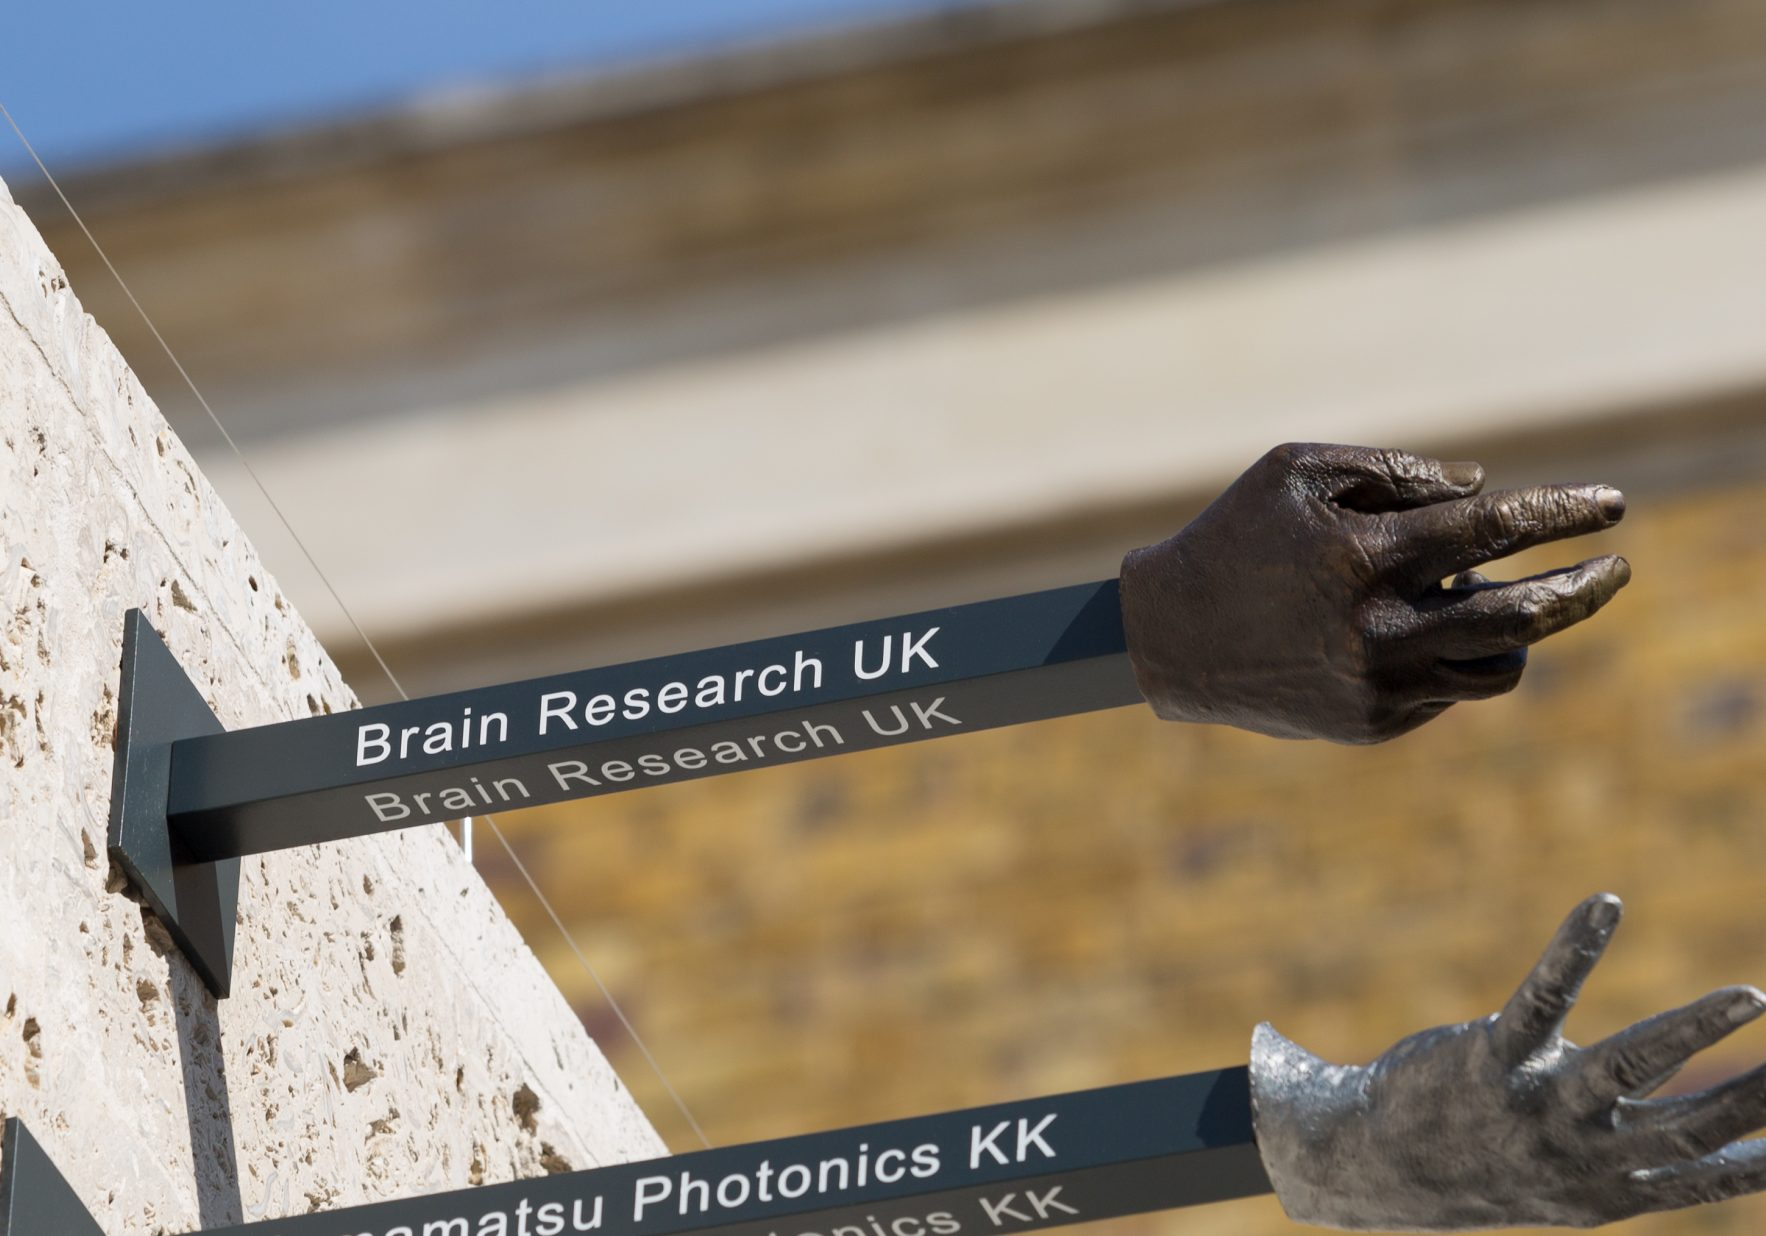 Brain Research Uk Hand Stem Ucl Donor Wall